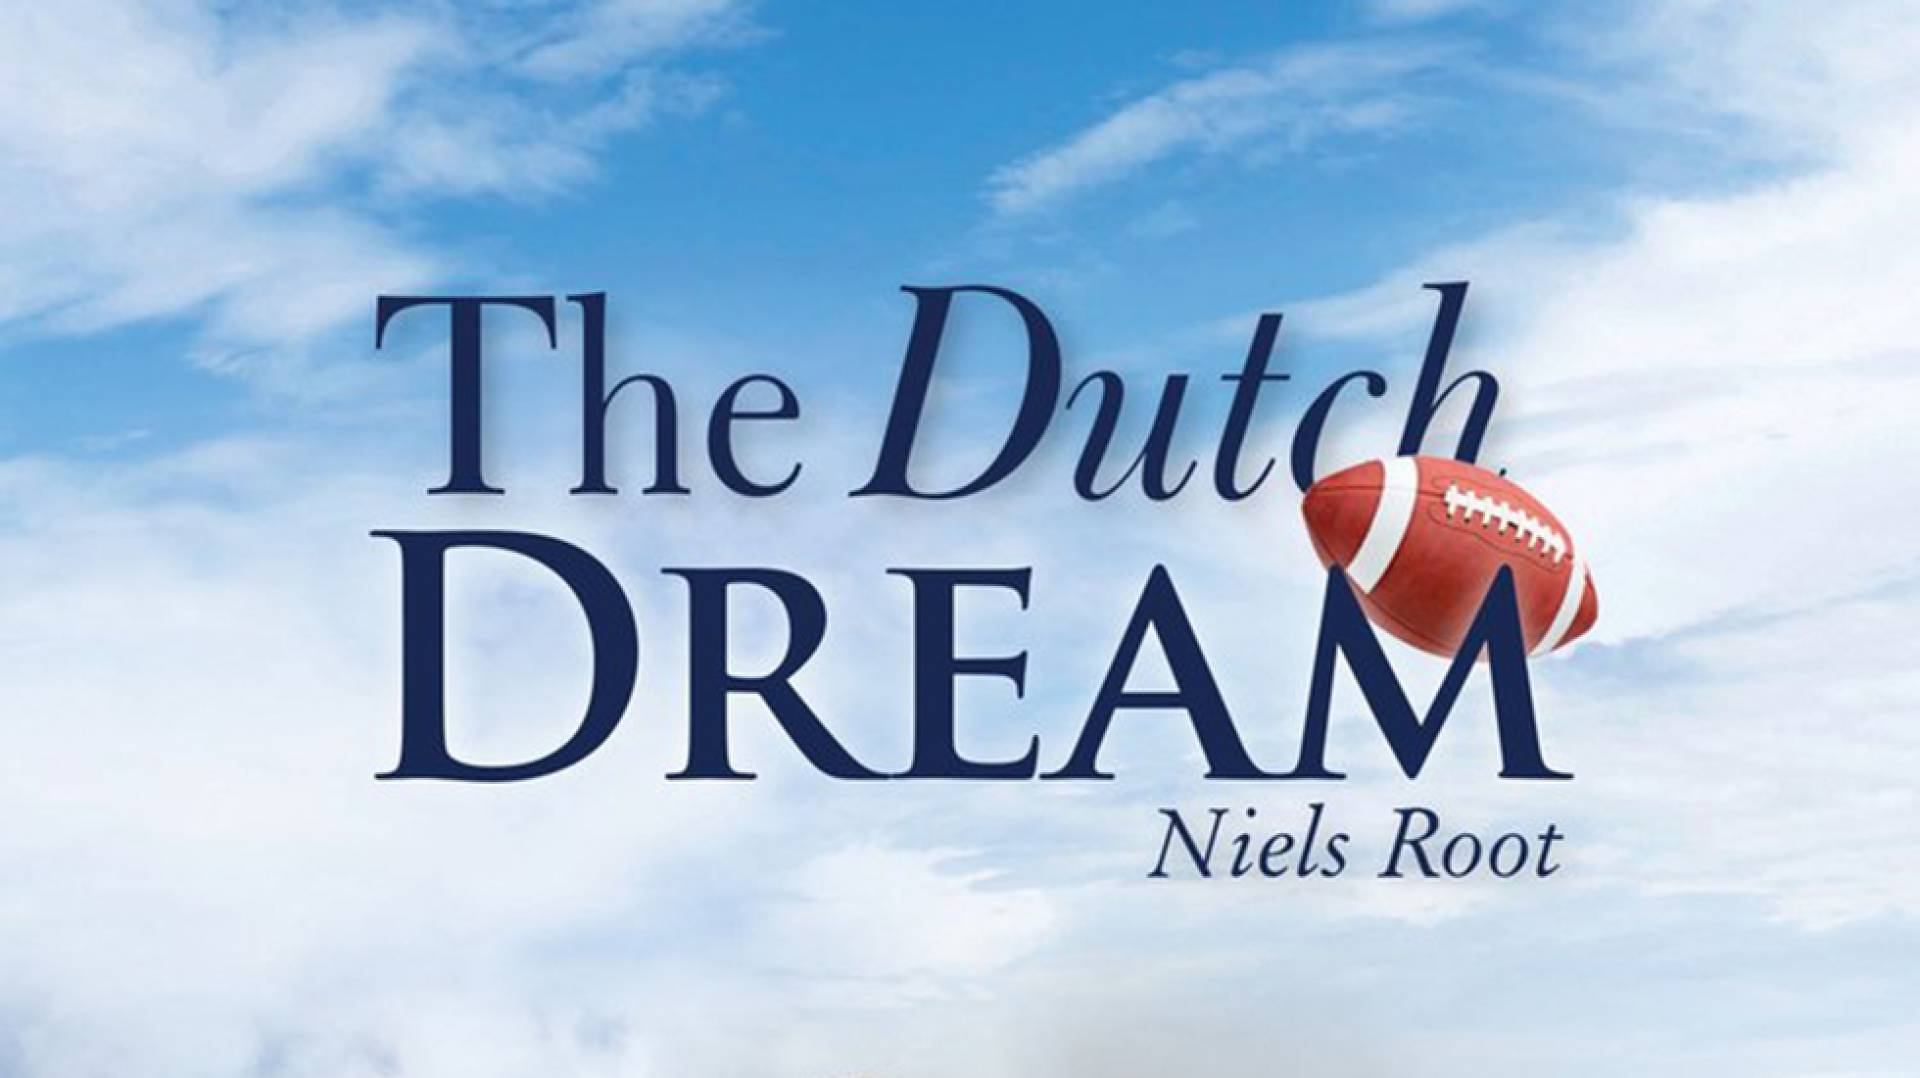 The Dutch Dream